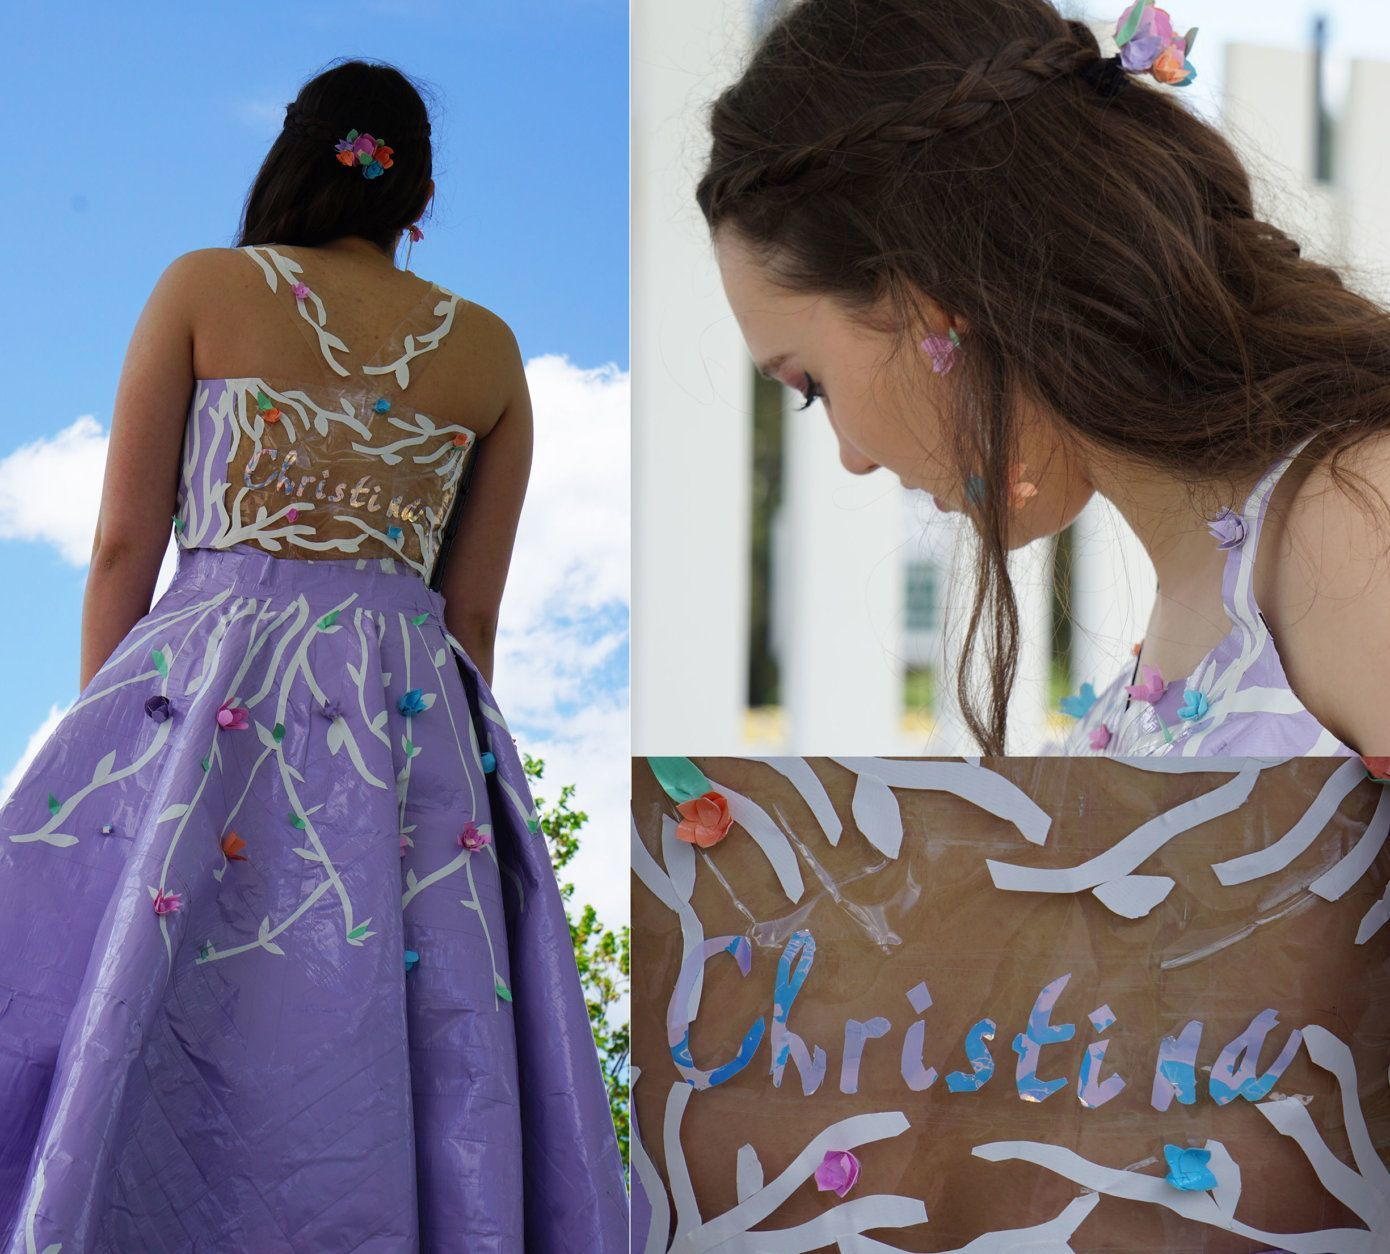 In addition to the dress, Christina made matching accessories, including tape flower earrings and headgear.  The back bodice of the dress had a transparent board that had her name (hand cut) on it with iridescent tape.  (Courtesy Christina Mellott)